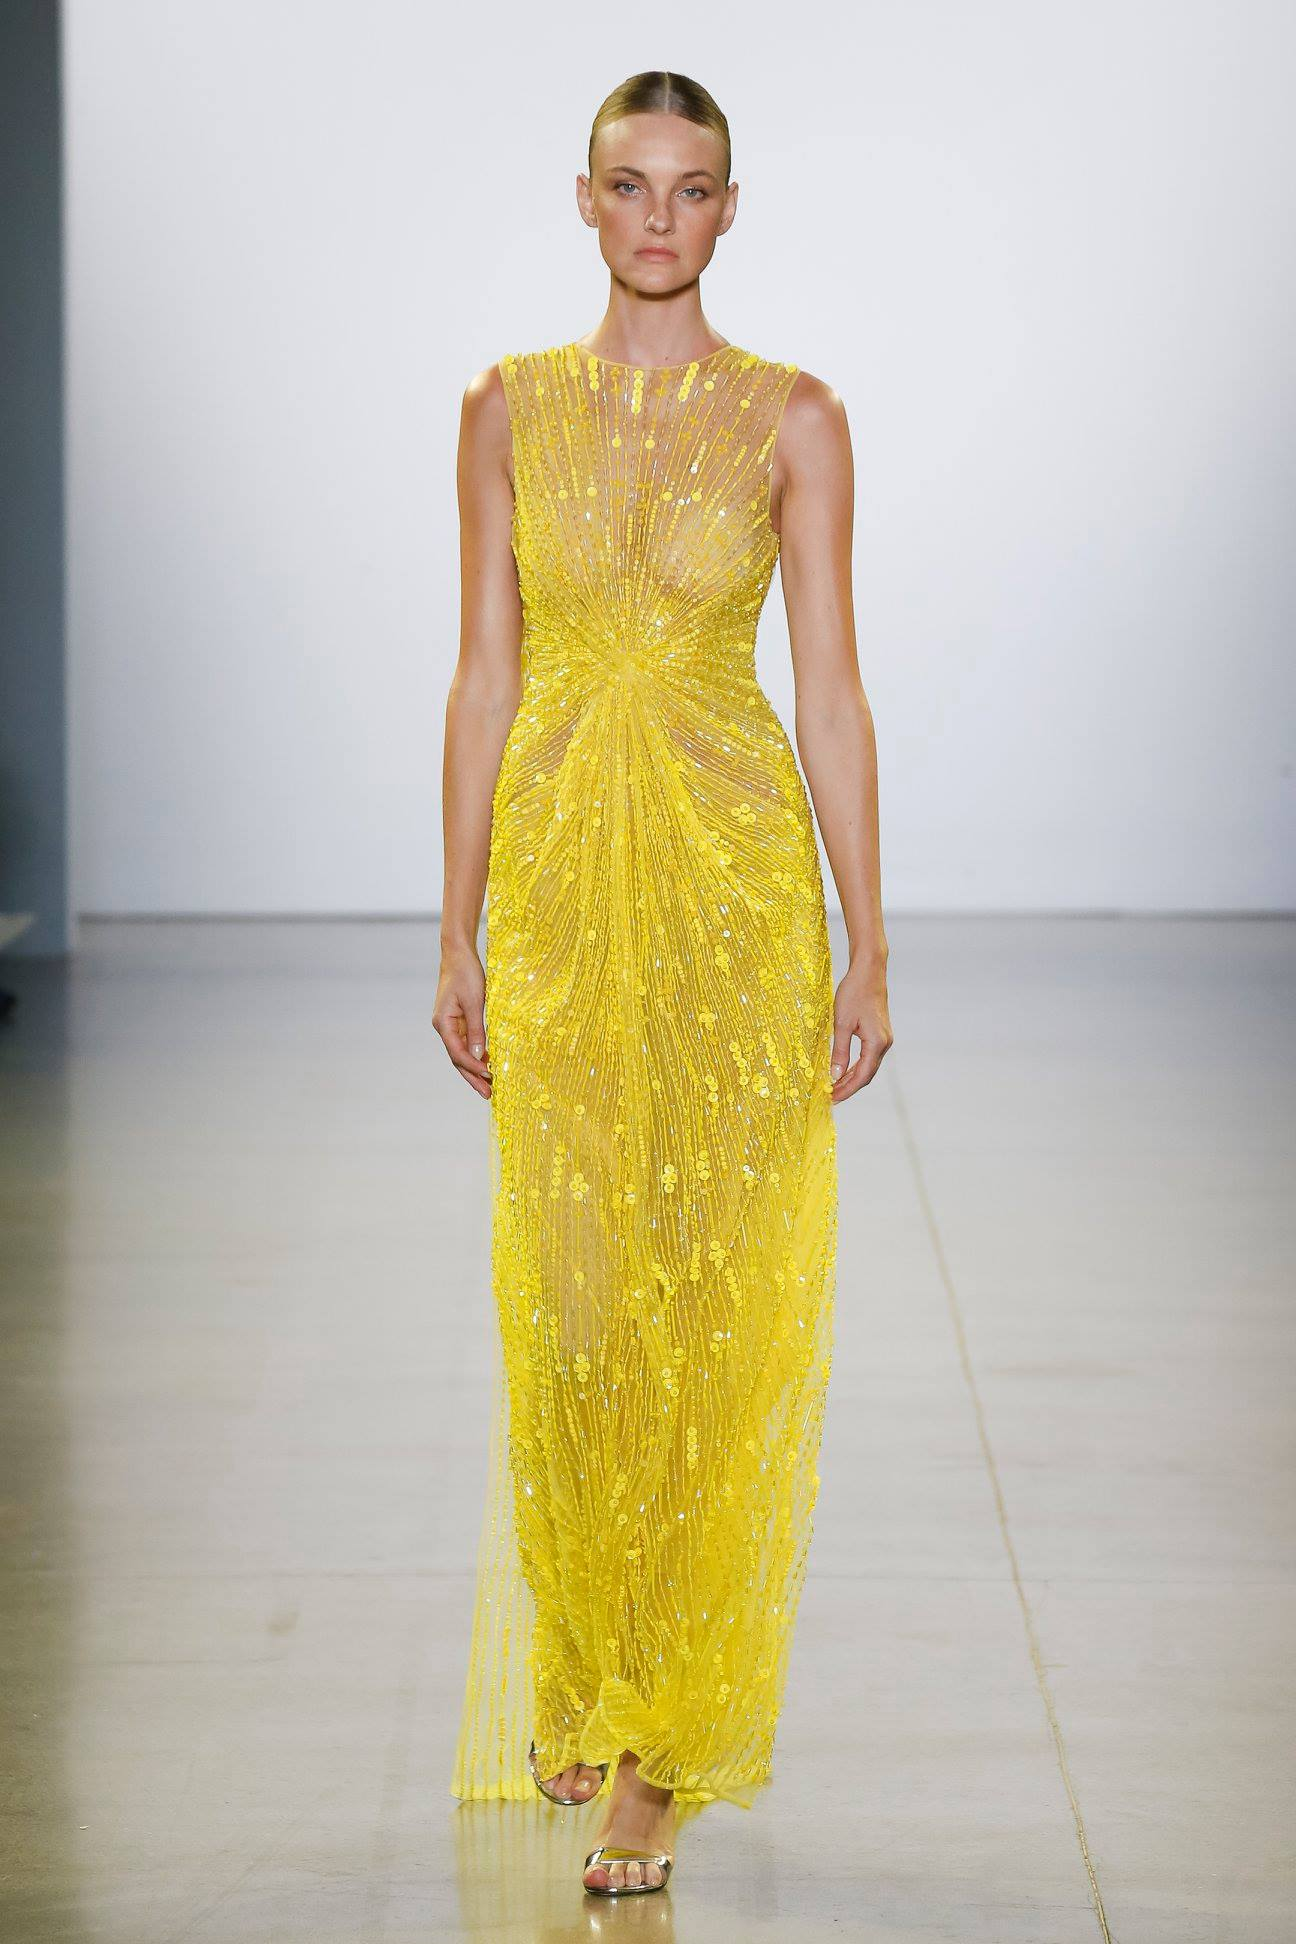 CAROLINE OPENING THE CONG TRI FALL WINTER 2019 AT NYFW -